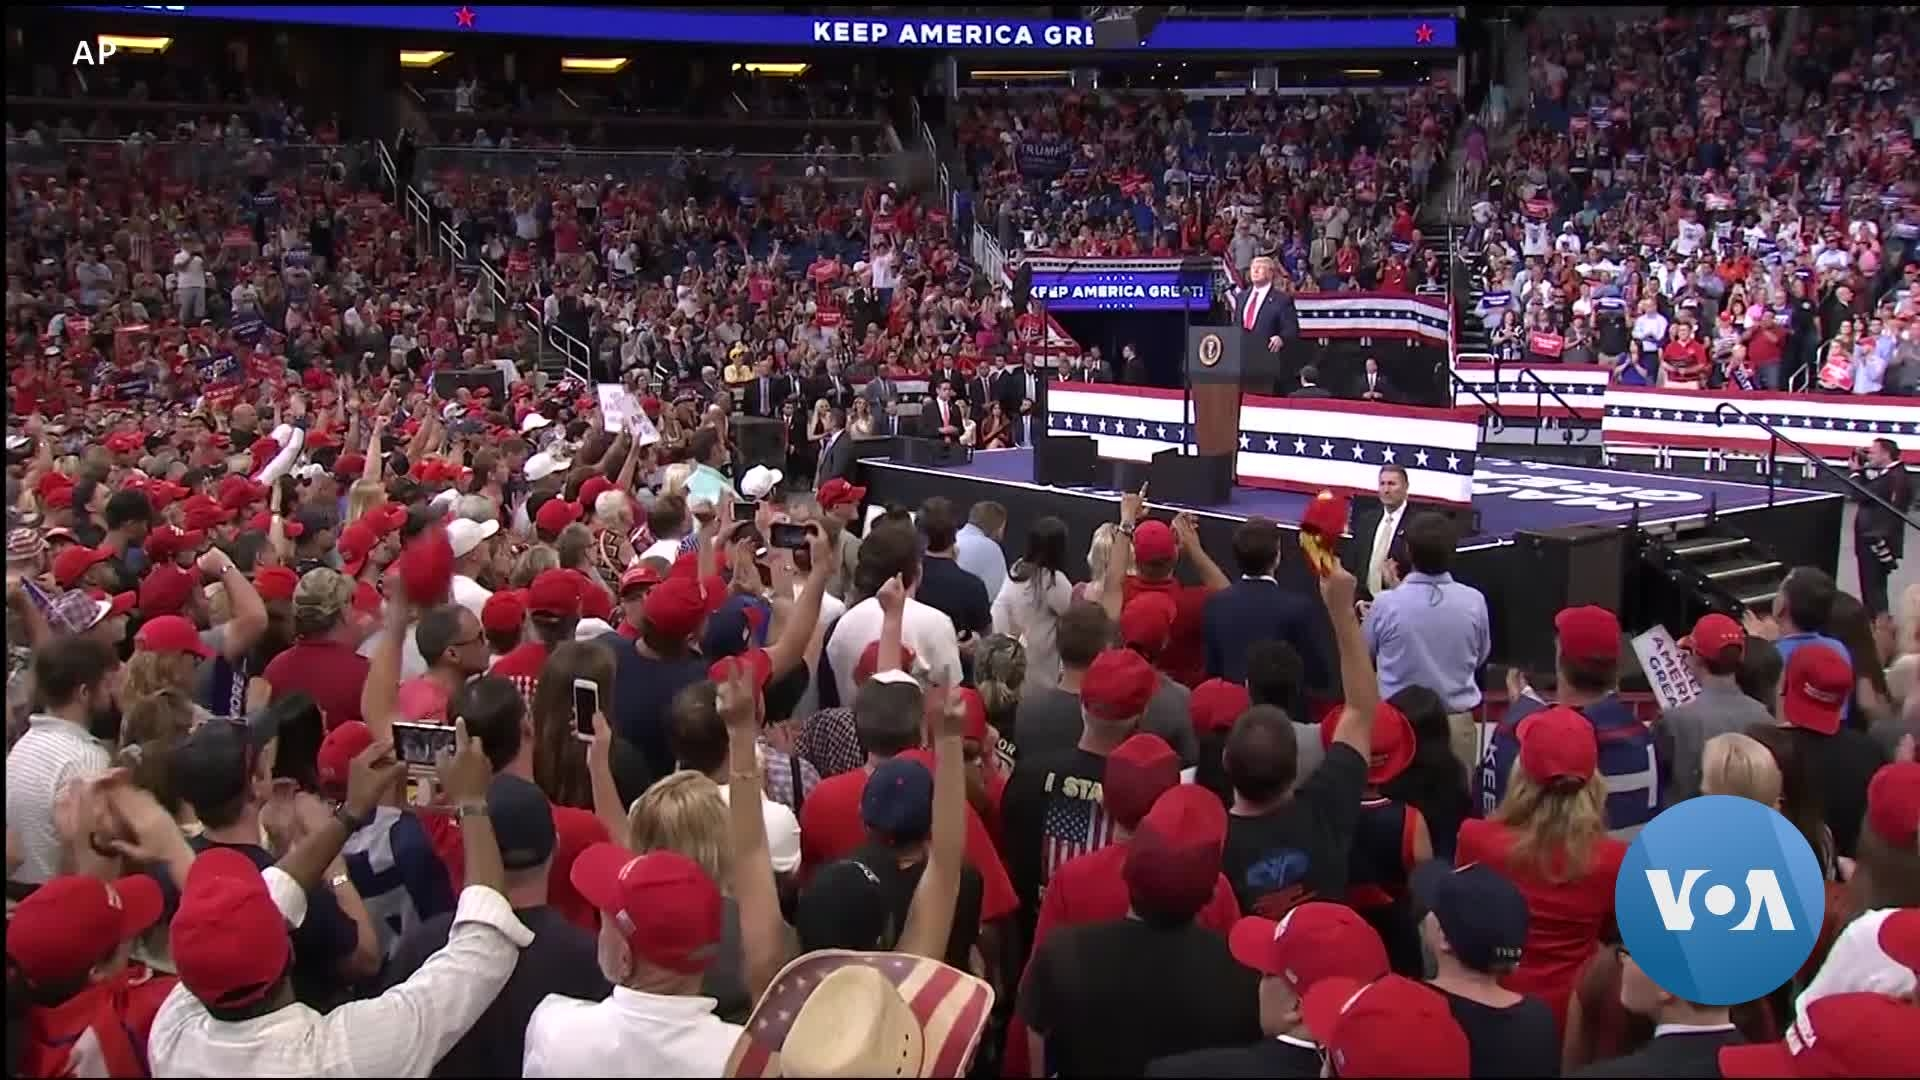 Trump Launches 'Keep America Great' Re-election Campaign